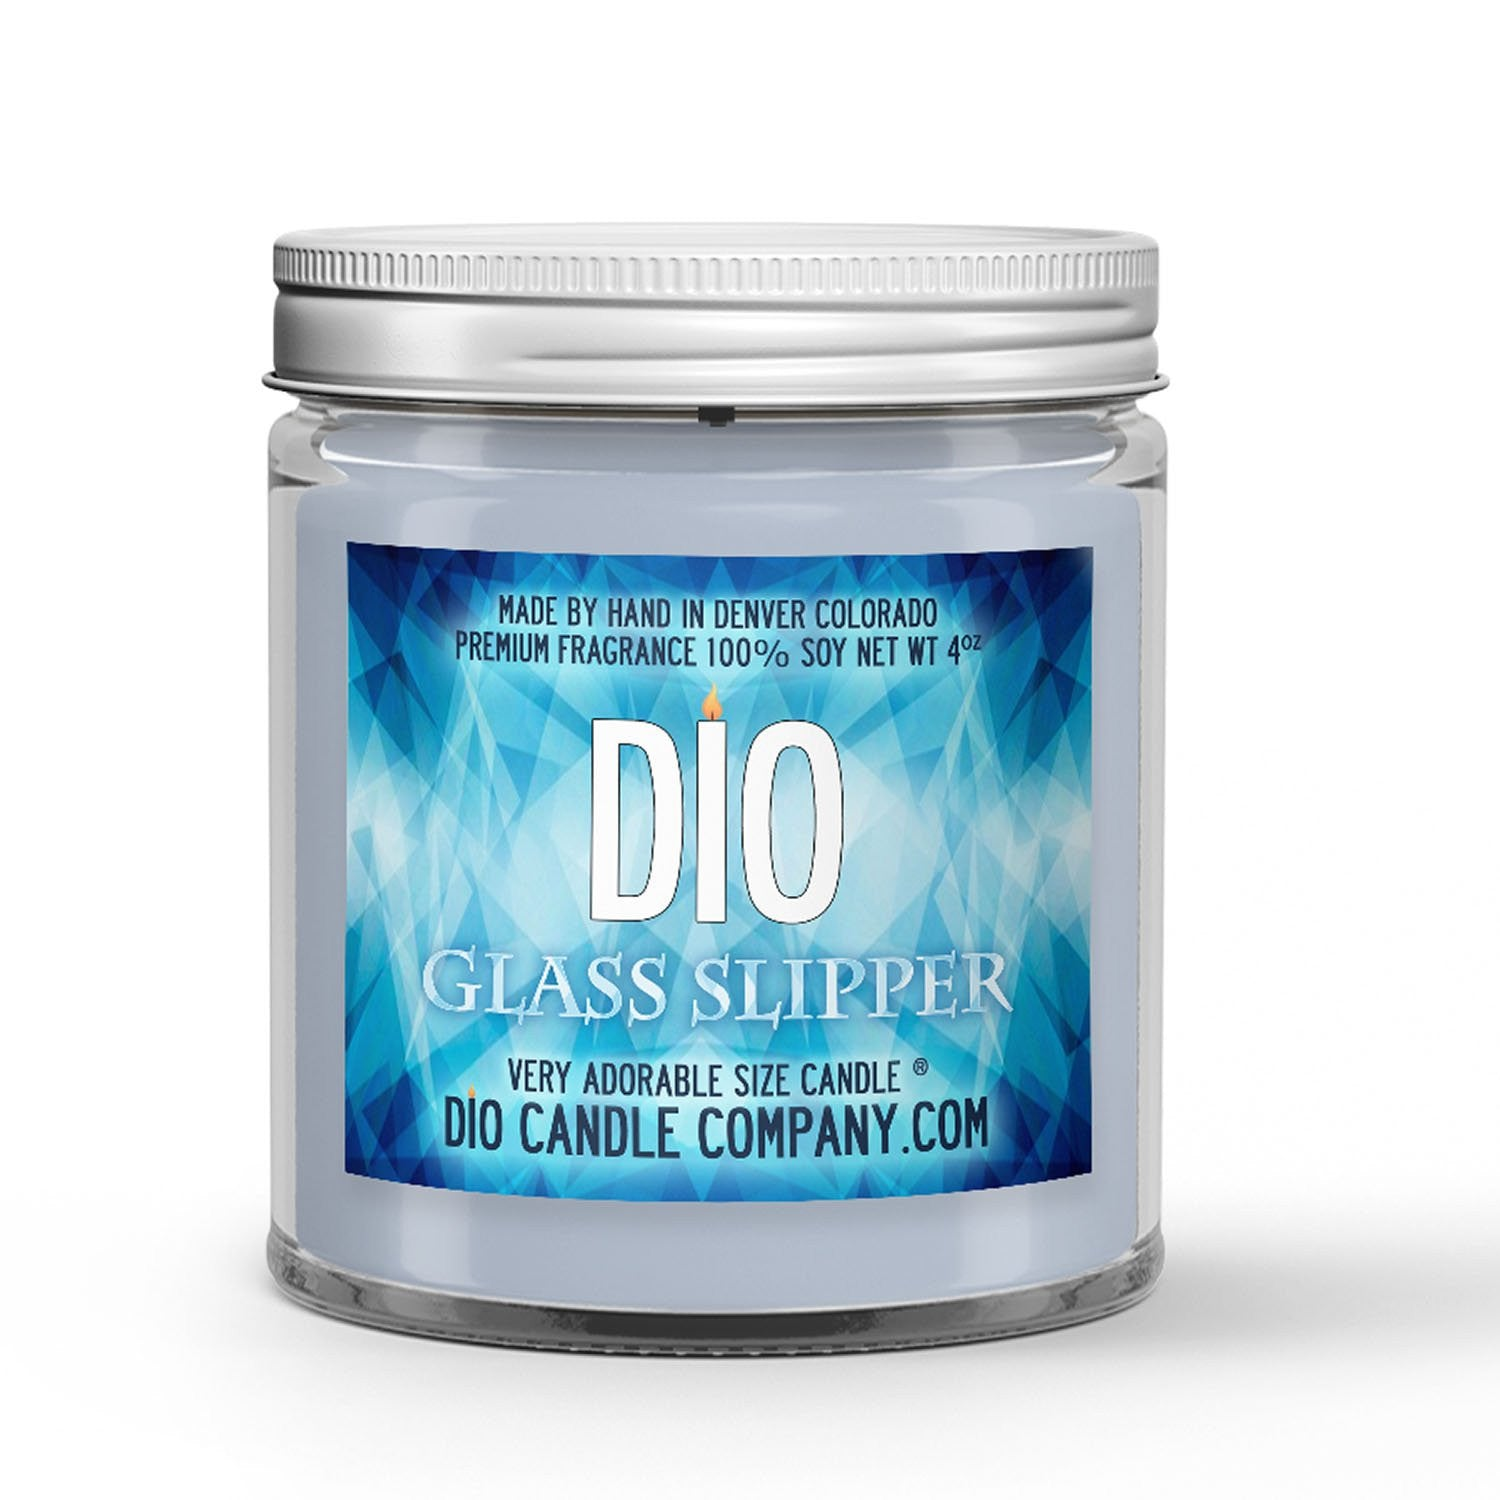 Glass Slipper Candle Peach - Violet - Rose Scented - Dio Candle Company